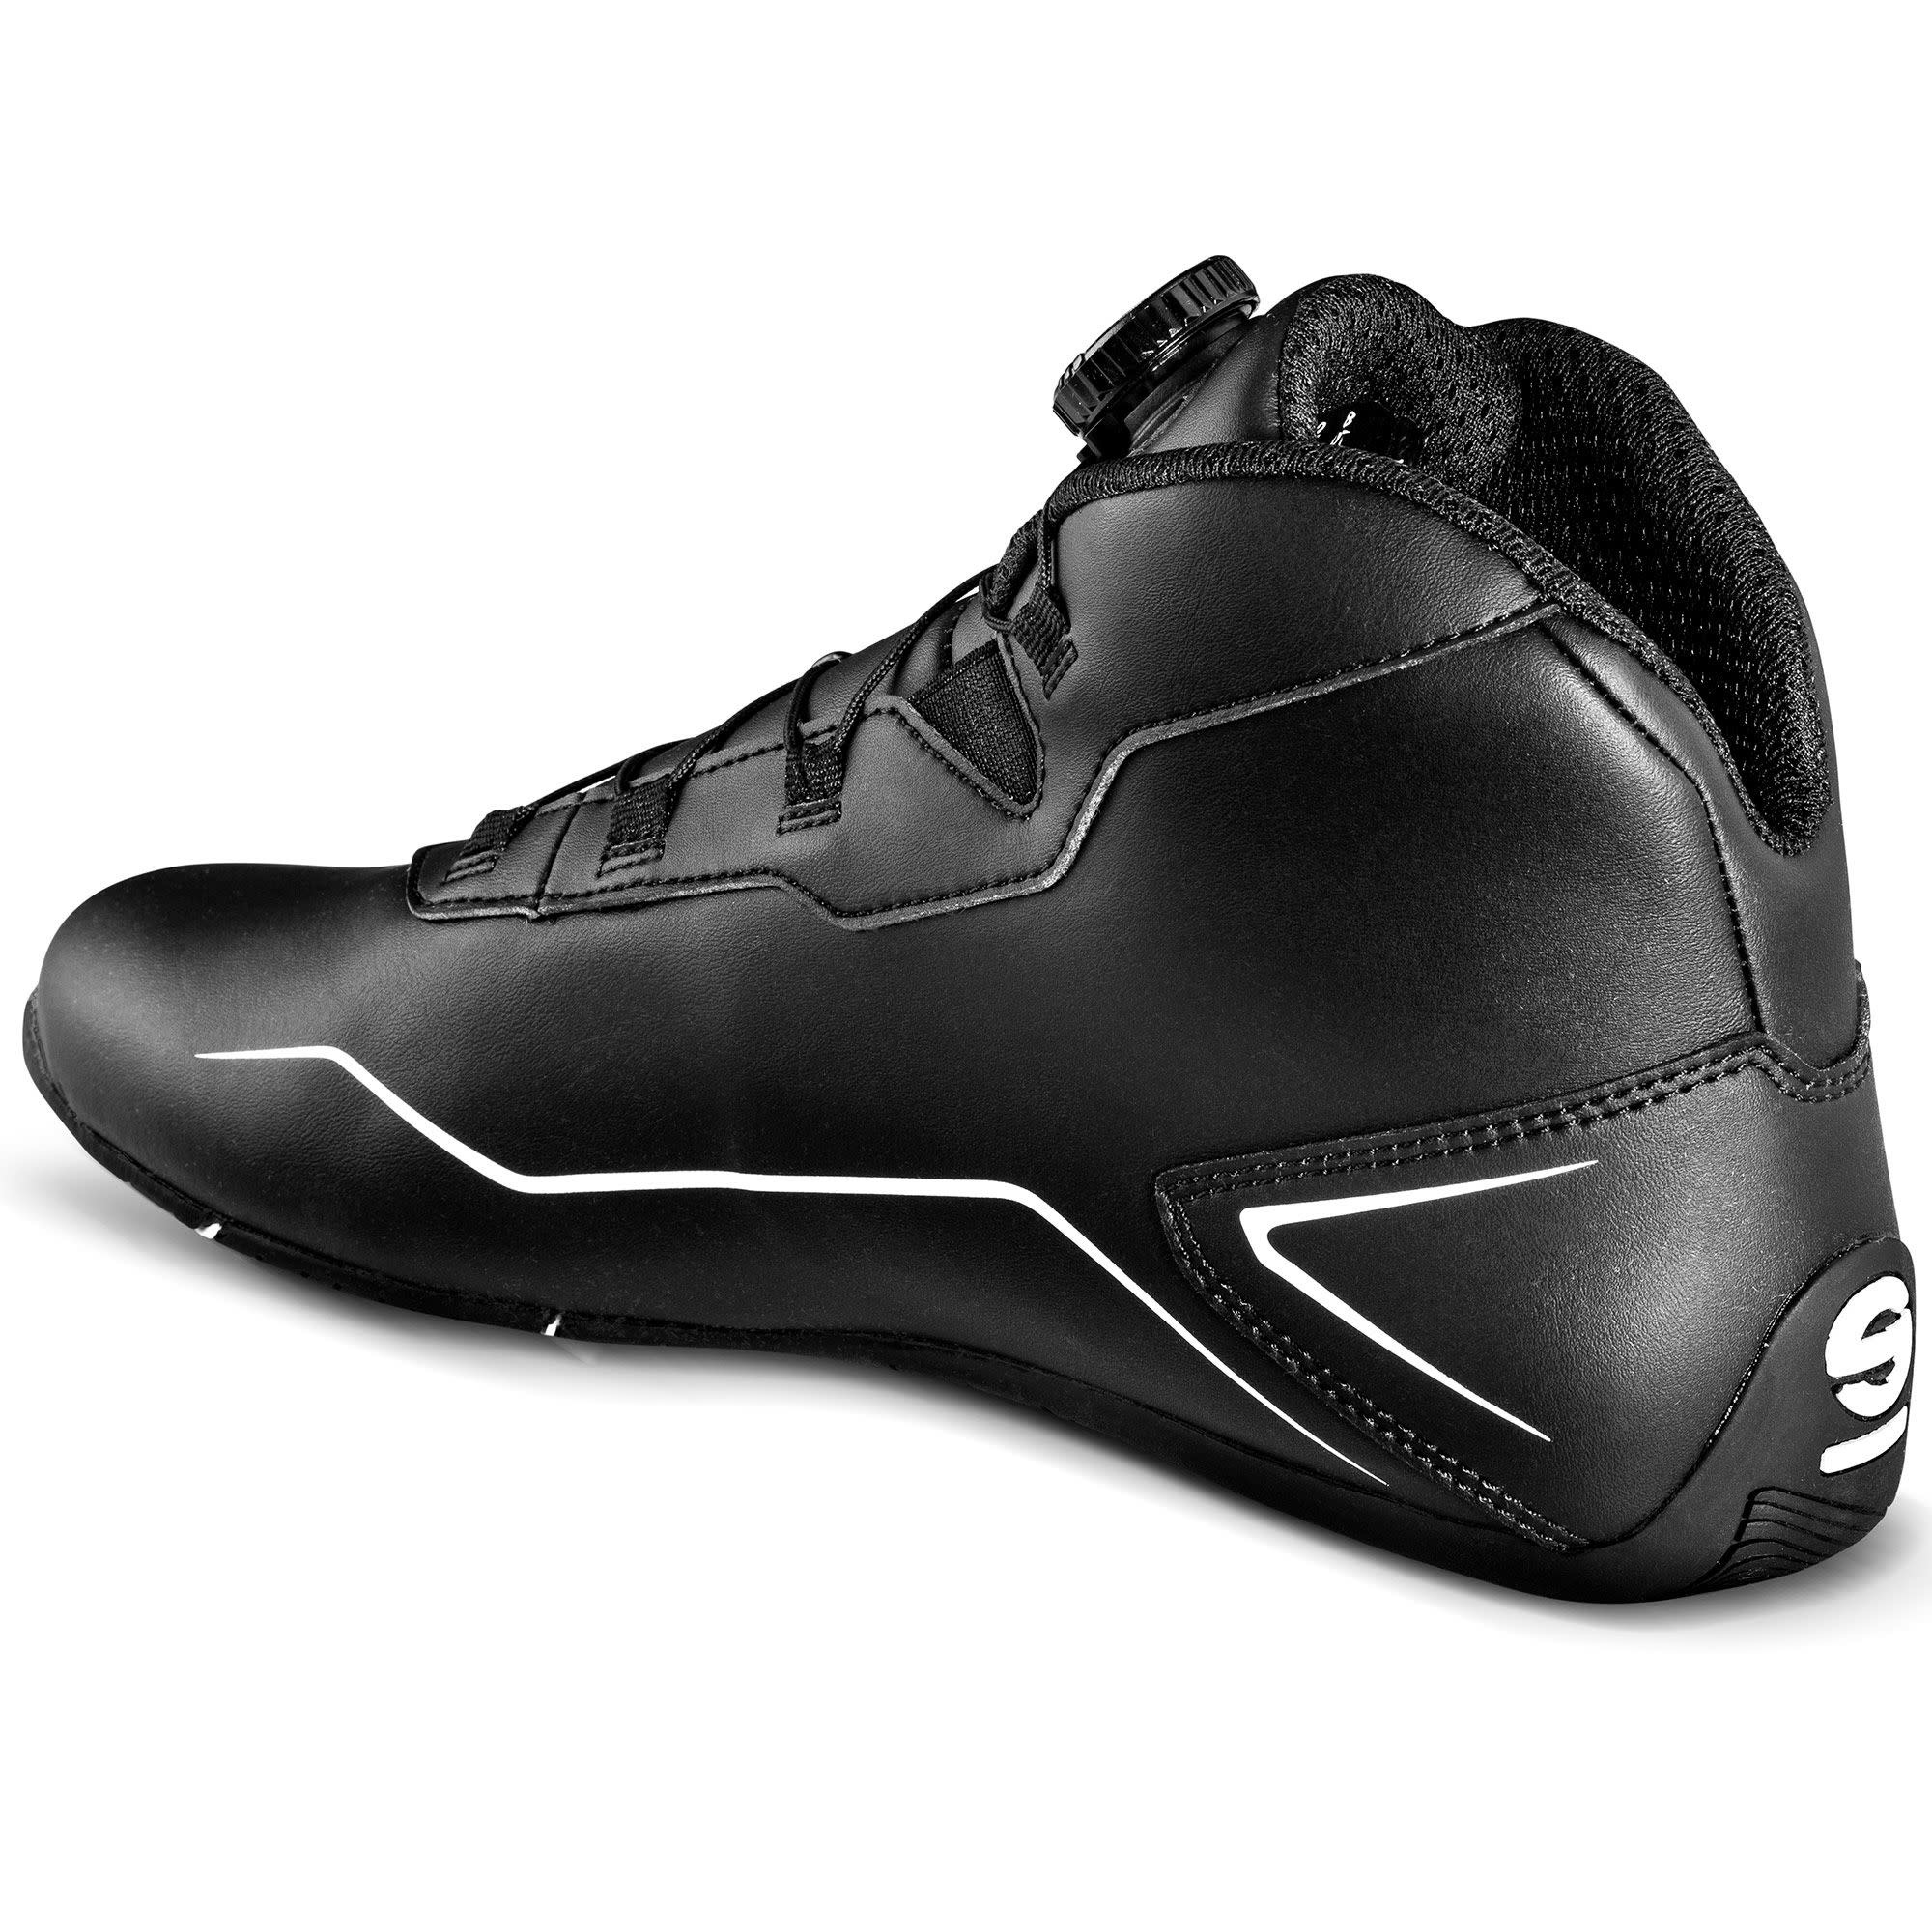 Sparco K-Pole water proof schoes black